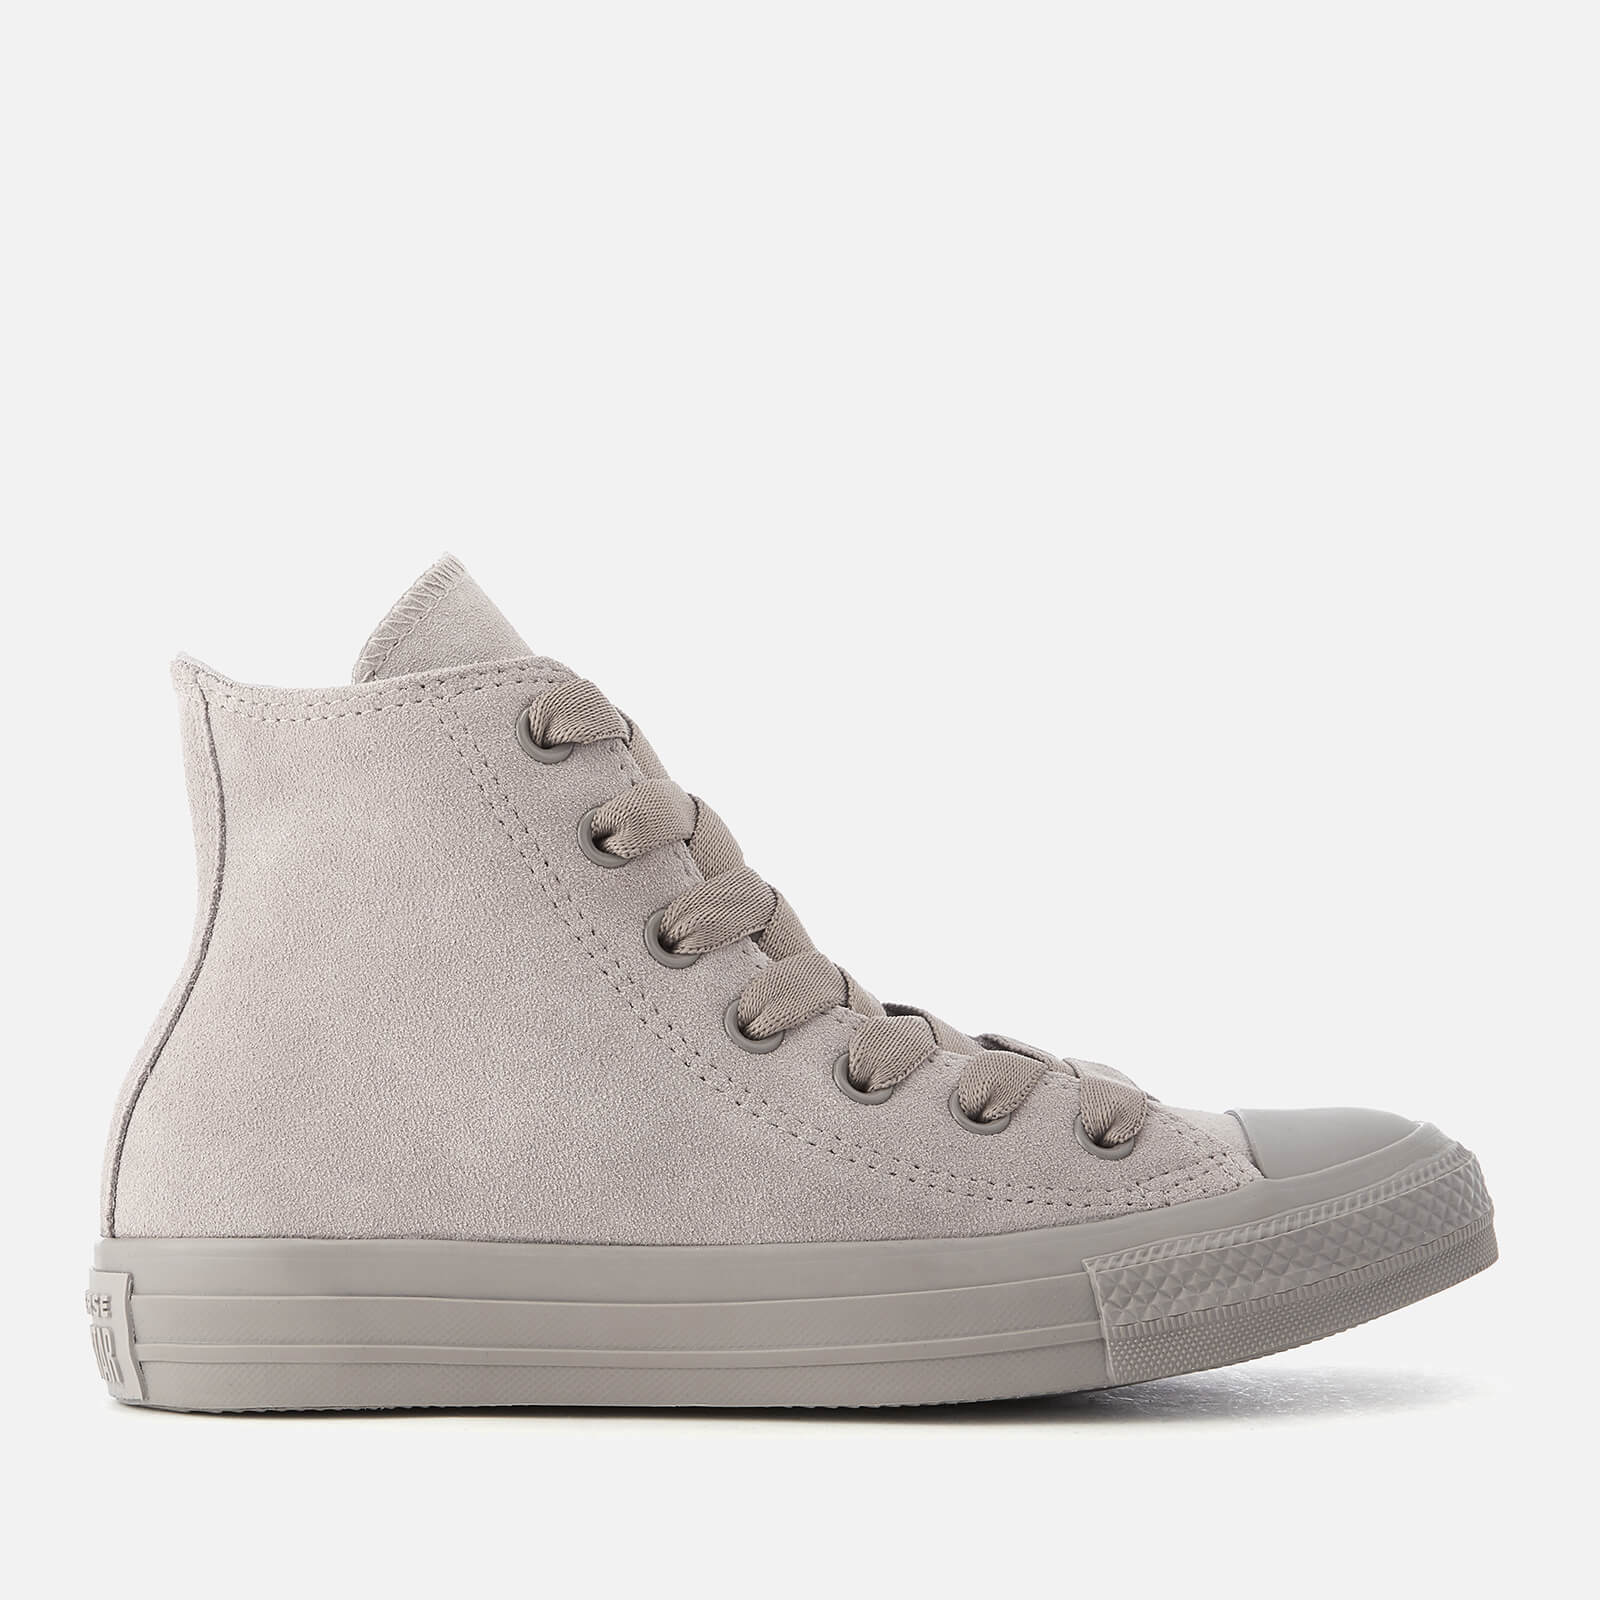 bc6885ed41b9 Converse Women s Chuck Taylor All Star Hi-Top Trainers - Mercury  Grey Mercury Grey Clothing